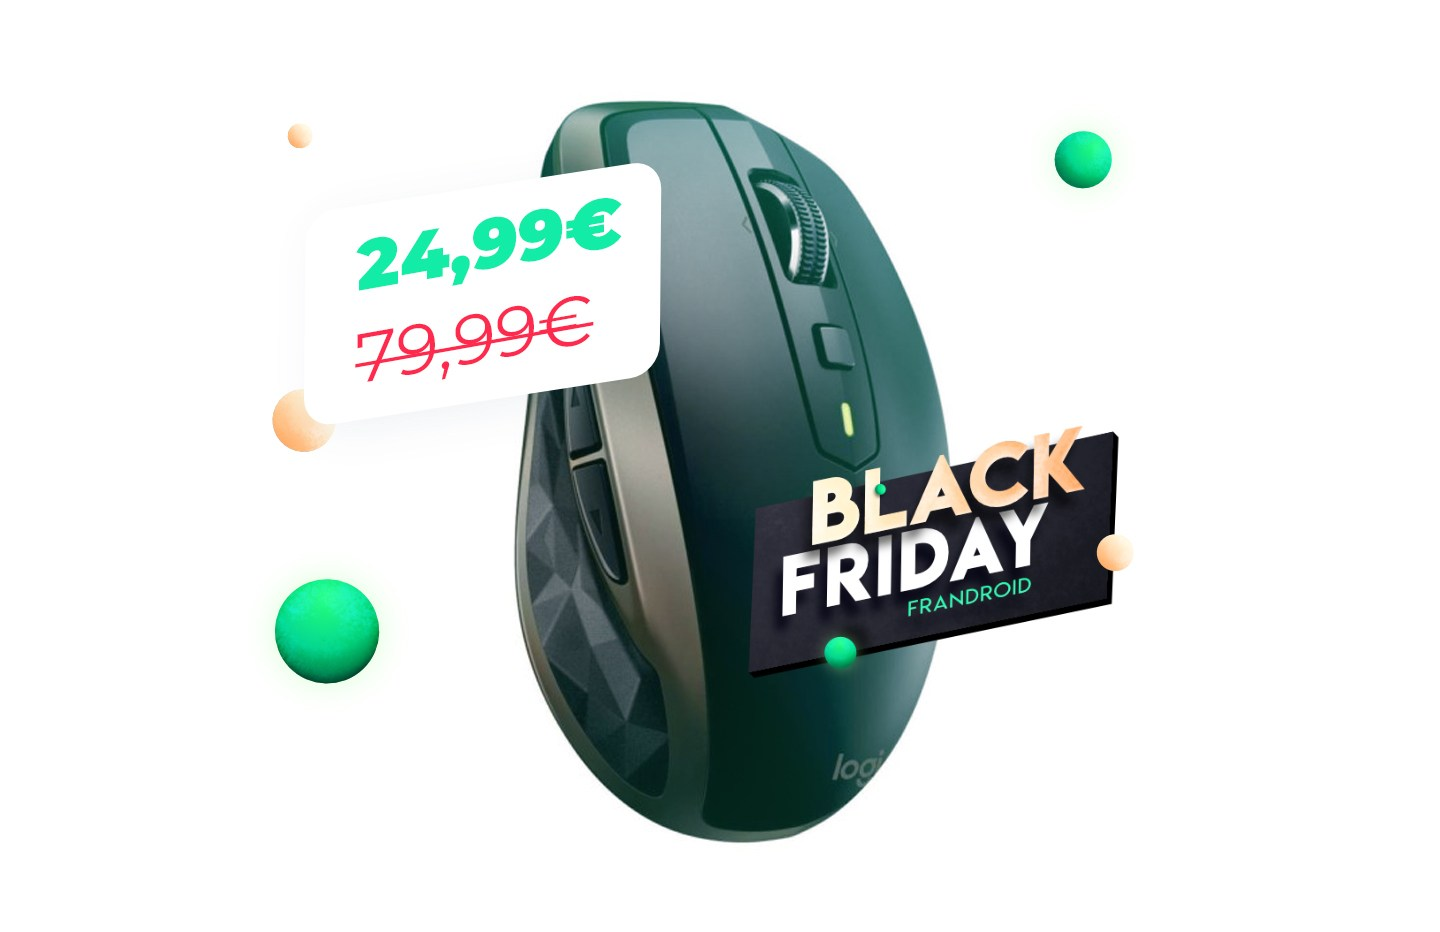 La super souris nomade Logitech MX Anywhere 2 sous la barre des 25 euros pour le Black Friday